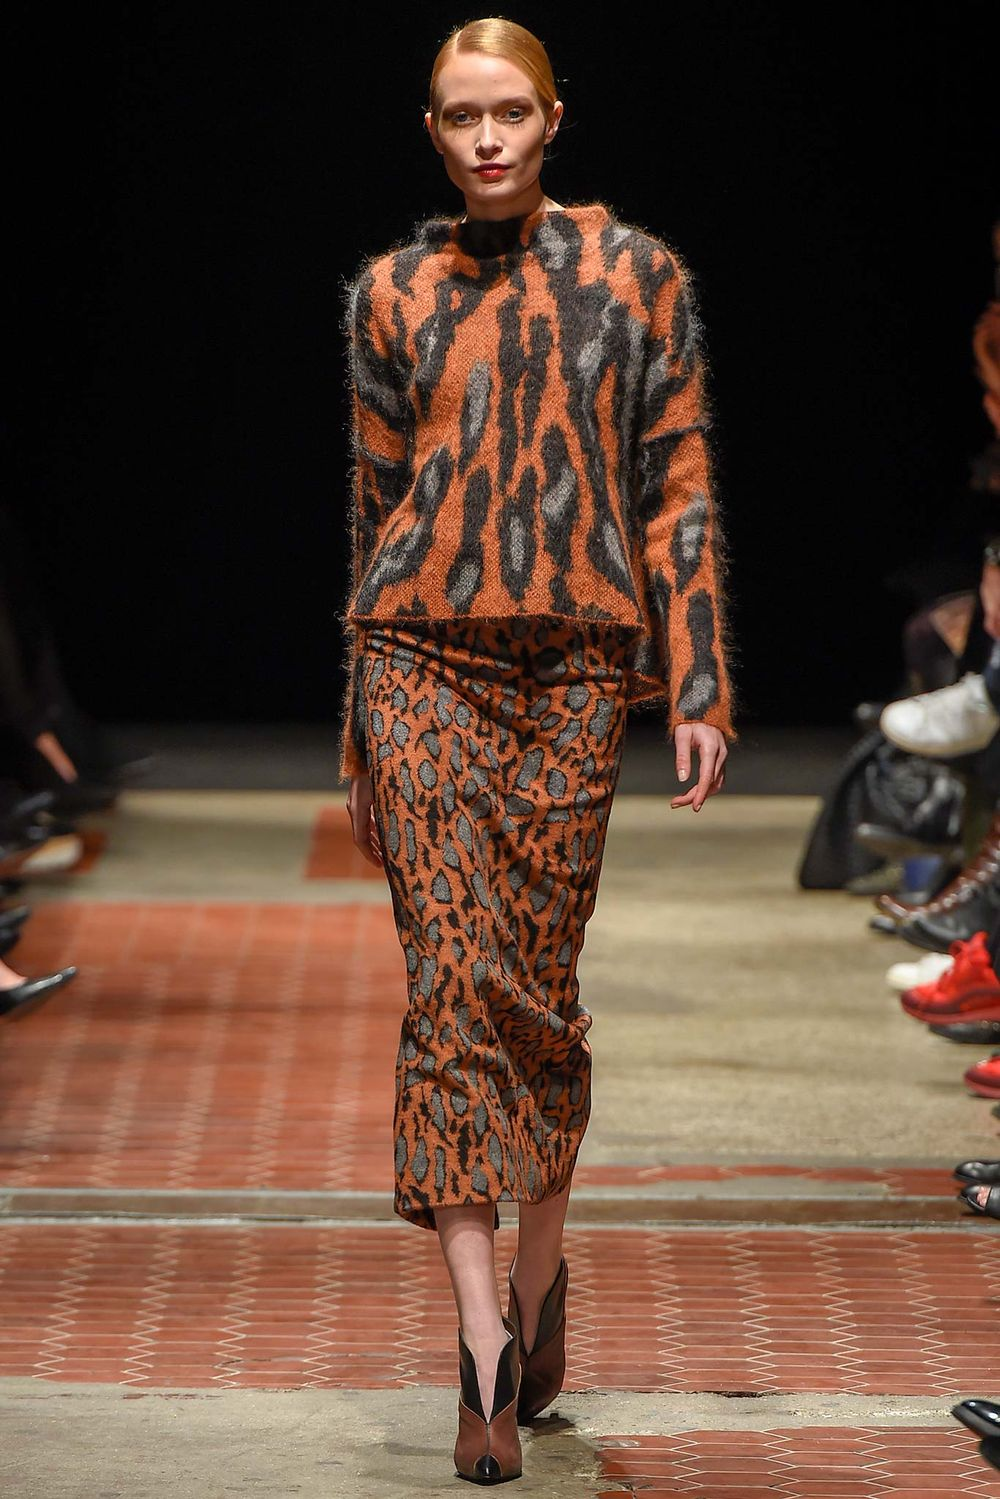 2015 Fall Winter 2016 Fashion Trends For Teens: By Malene Birger Fashion Show Fall 2015